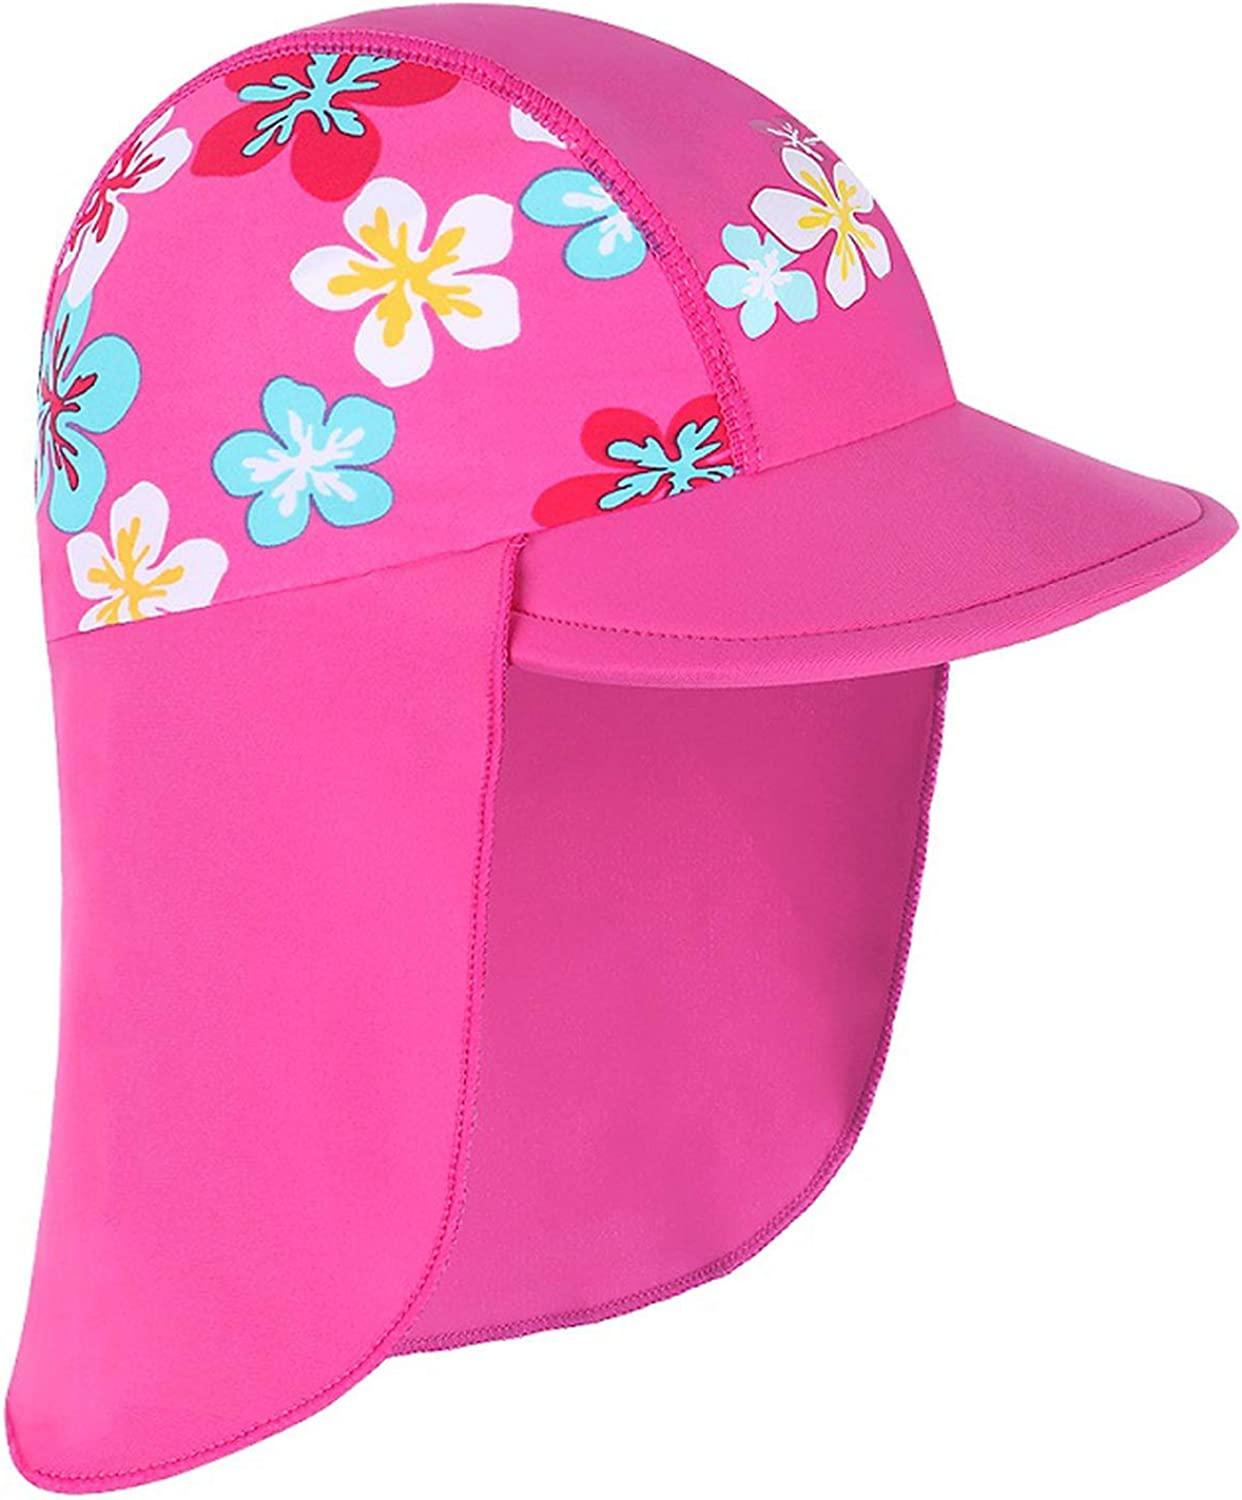 Newest Summer Swimming Cap Children Sun Protection Swim Hats Waterproof Outdoor Sports Beach Hats